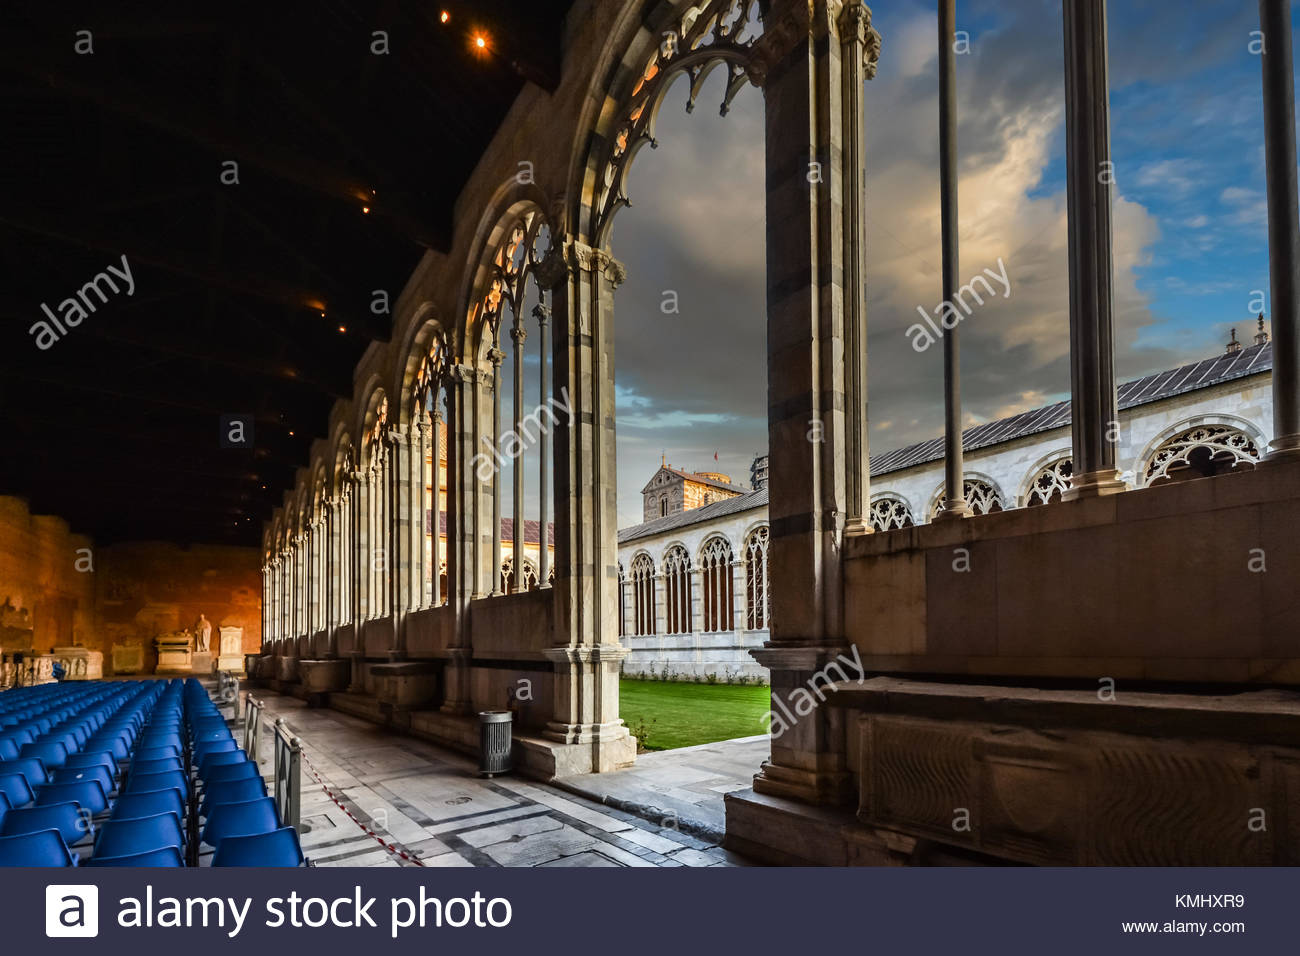 The Camposanto on the Square of Miracles in the Tuscan region of Pisa Italy - Stock Image